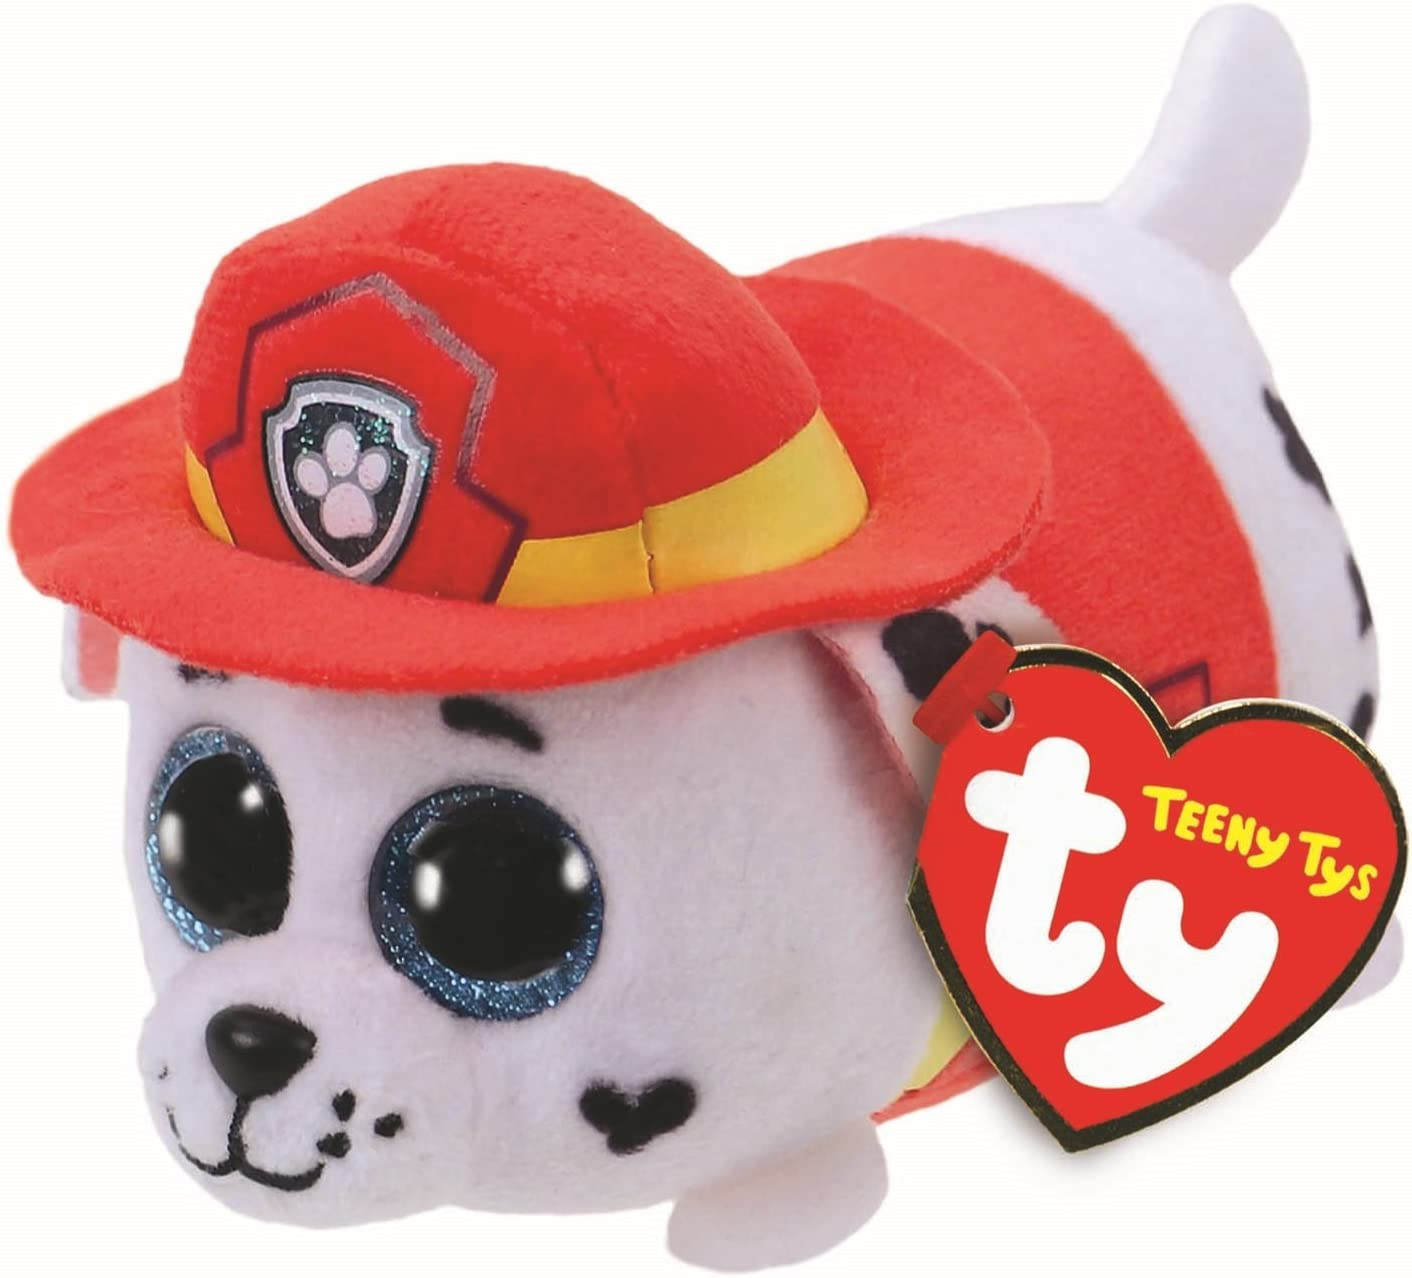 BRAND NEW WITH TAGS TY TEENY TYS COLLECTION PAW PATROL CHASE